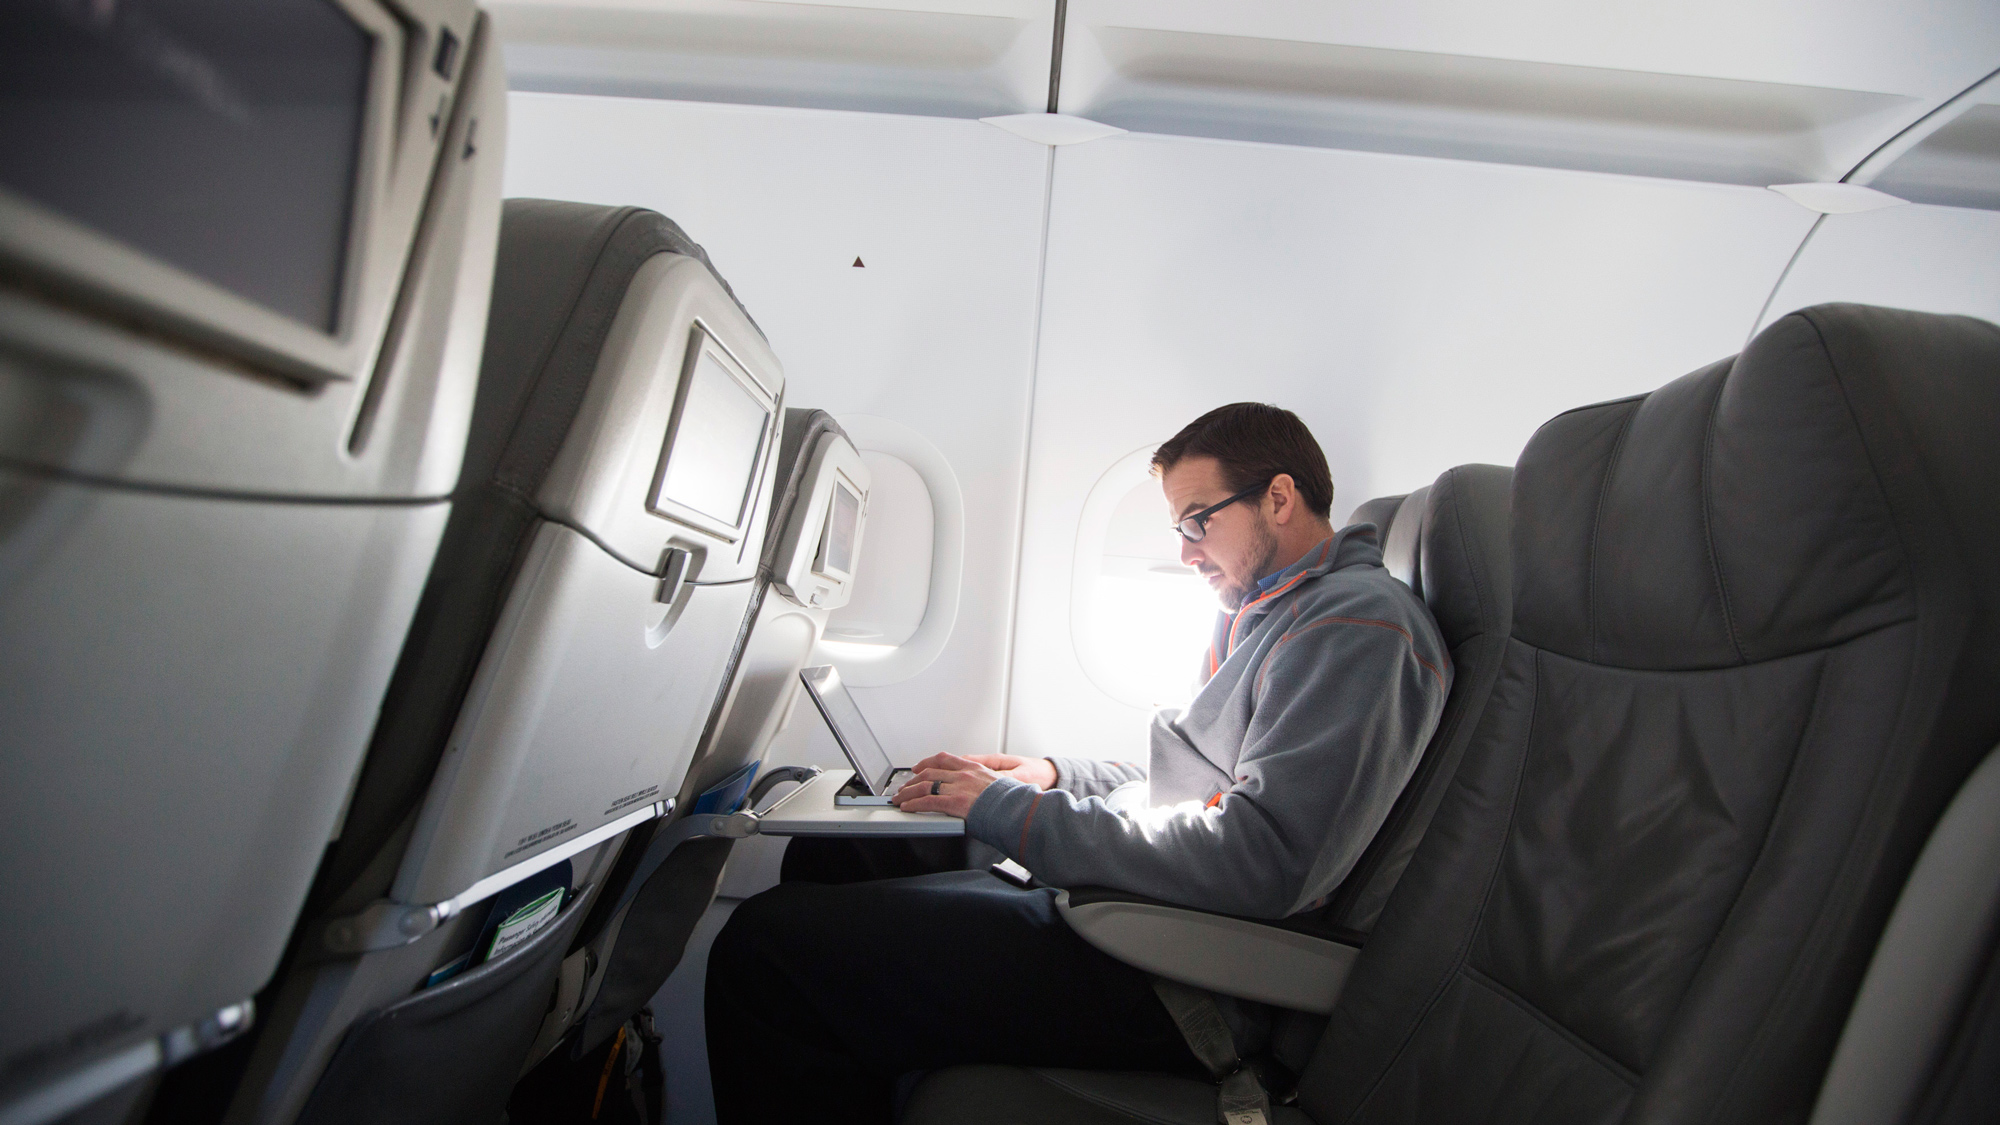 A man uses his laptop to test a new high speed inflight Internet service named Fli-Fi while on a special JetBlue media flight out of John F. Kennedy International Airport in New York December 11, 2013. Wi-Fi in the sky is taking off, promising much better connections for travelers and a bonanza for the companies that sell the systems. With satellite-based Wi-Fi, Internet speeds on jetliners are getting lightning fast. And airlines are finding that travelers expect connections in the air to rival those on the ground - and at lower cost. Picture taken December 11, 2013. To match Analysis AIRLINES-WIFI/ REUTERS/Lucas Jackson (UNITED STATES - Tags: TRANSPORT BUSINESS SCIENCE TECHNOLOGY TELECOMS TRAVEL)